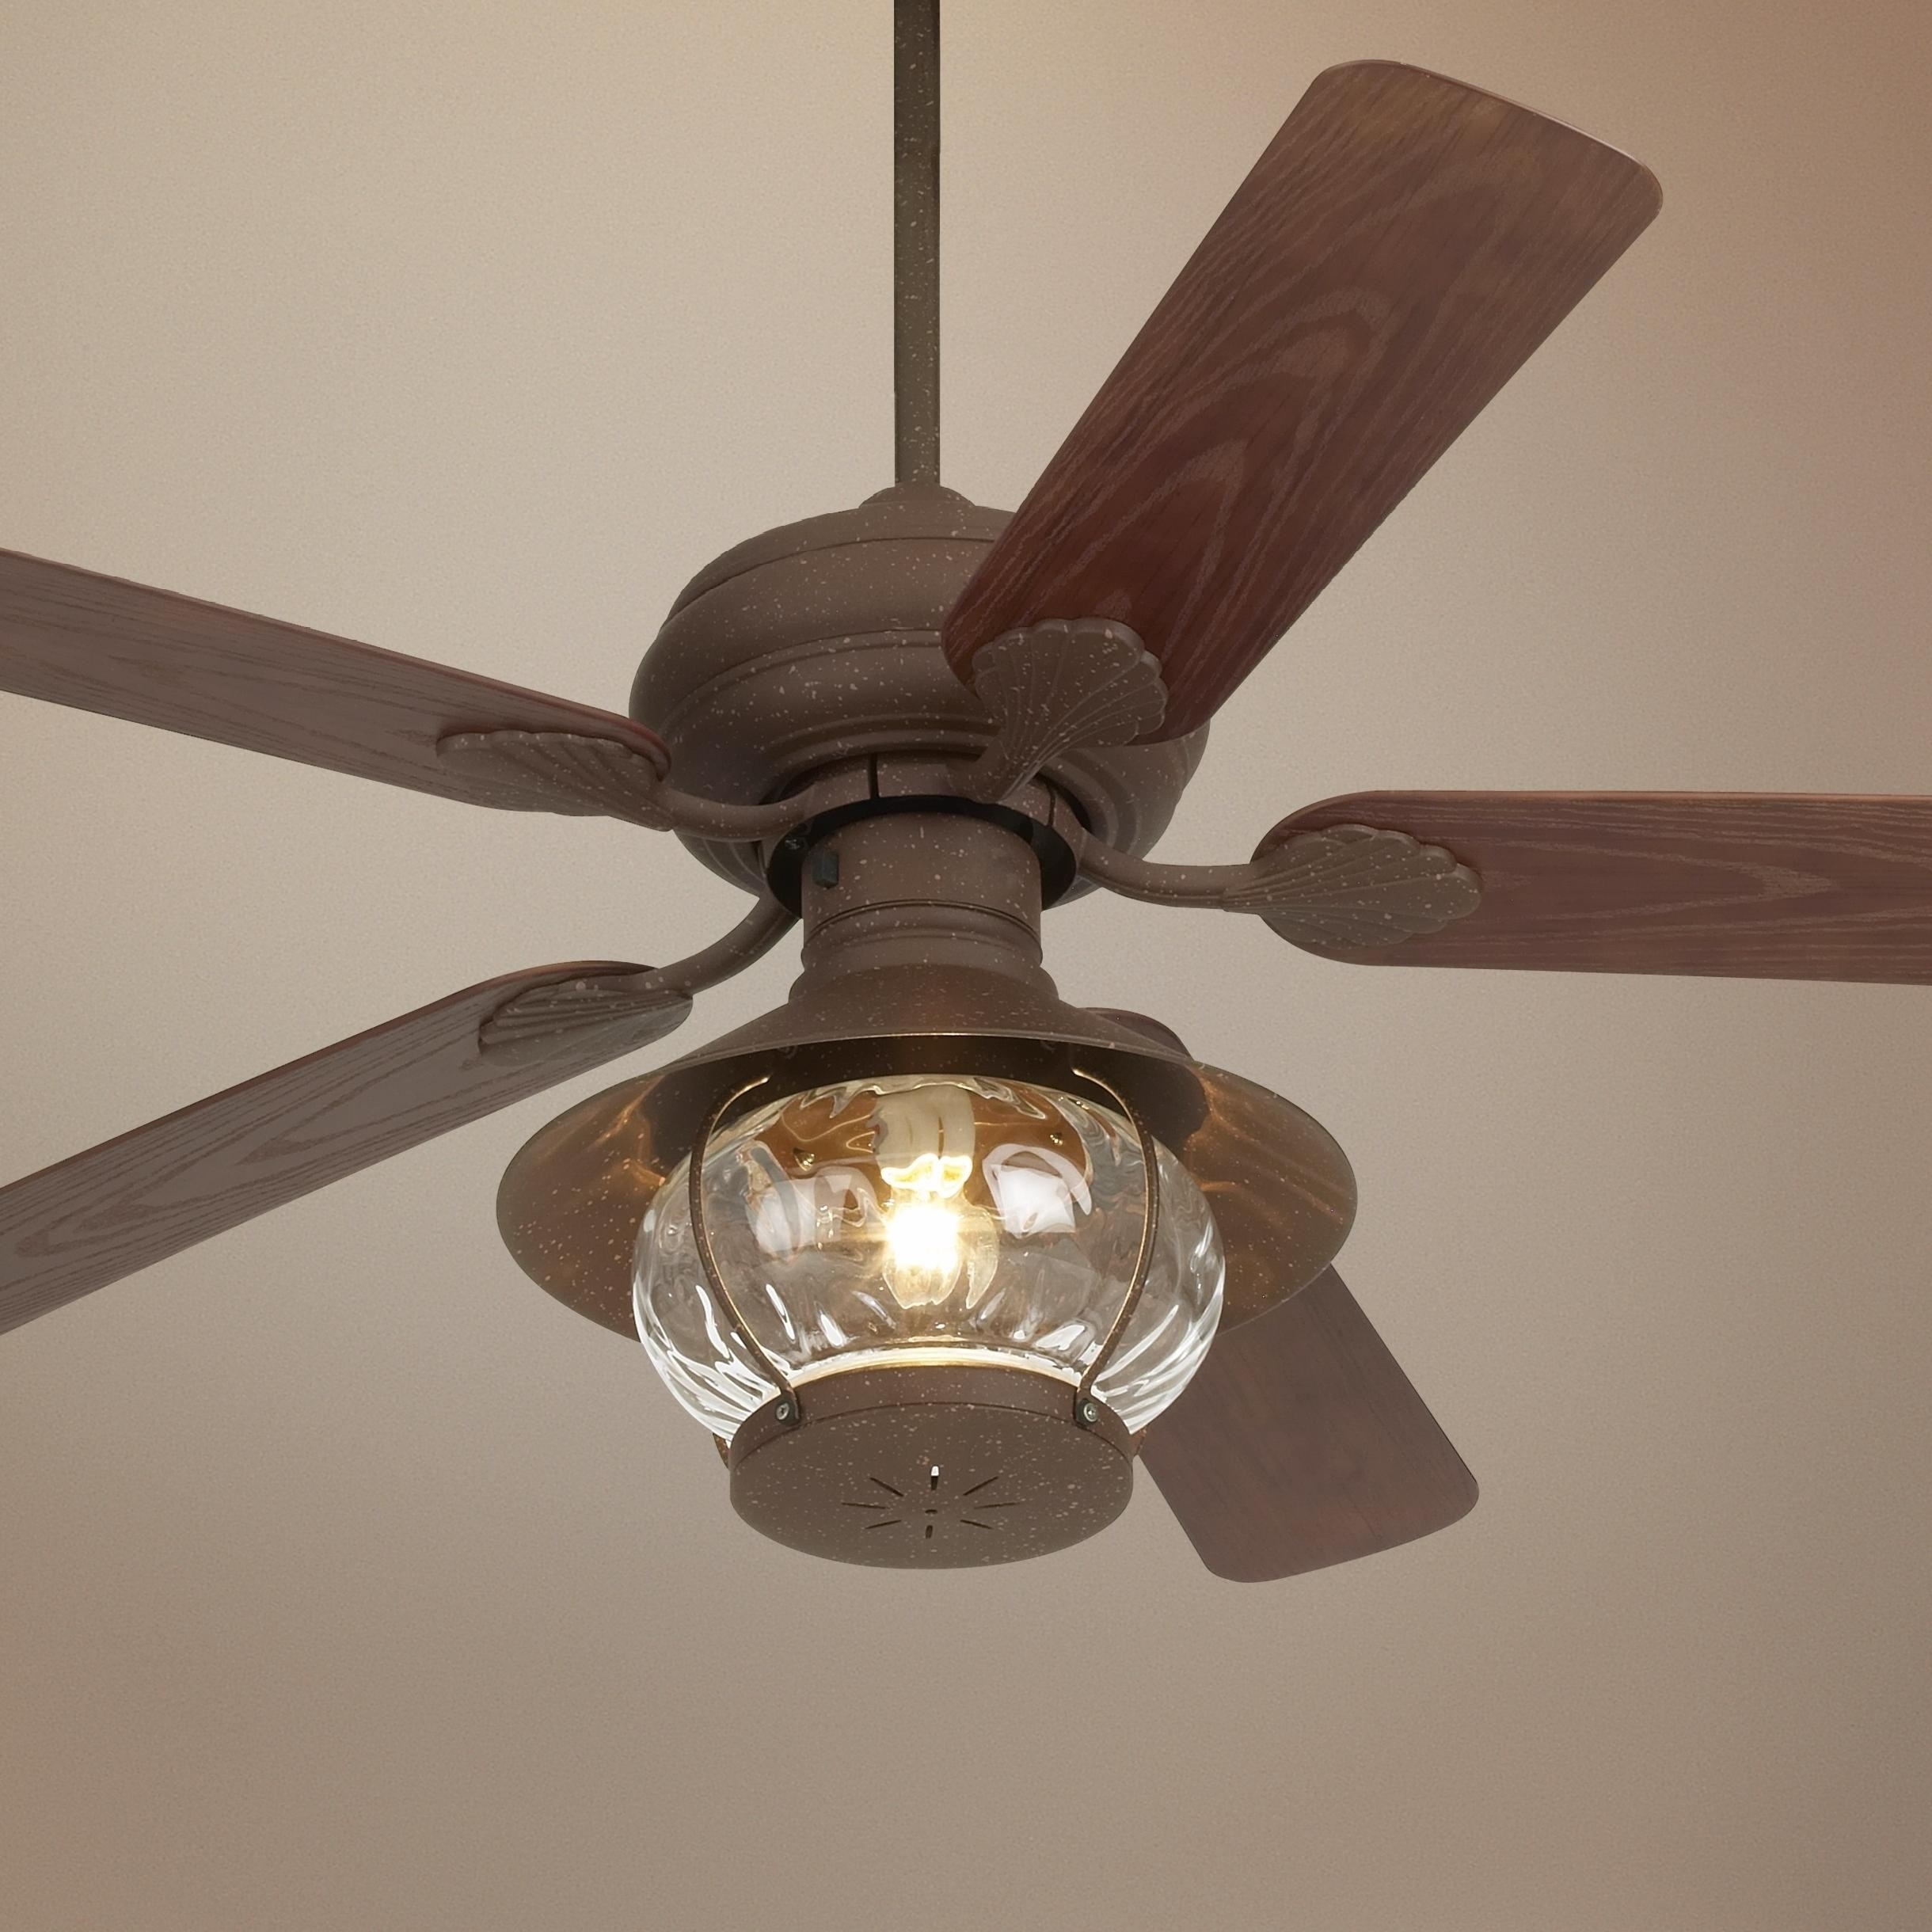 Trendy Outdoor Ceiling Fans With Lantern Light With Regard To Frantic Light Rustic Ceiling Light Shades Rustic Ceiling Lights (View 8 of 20)